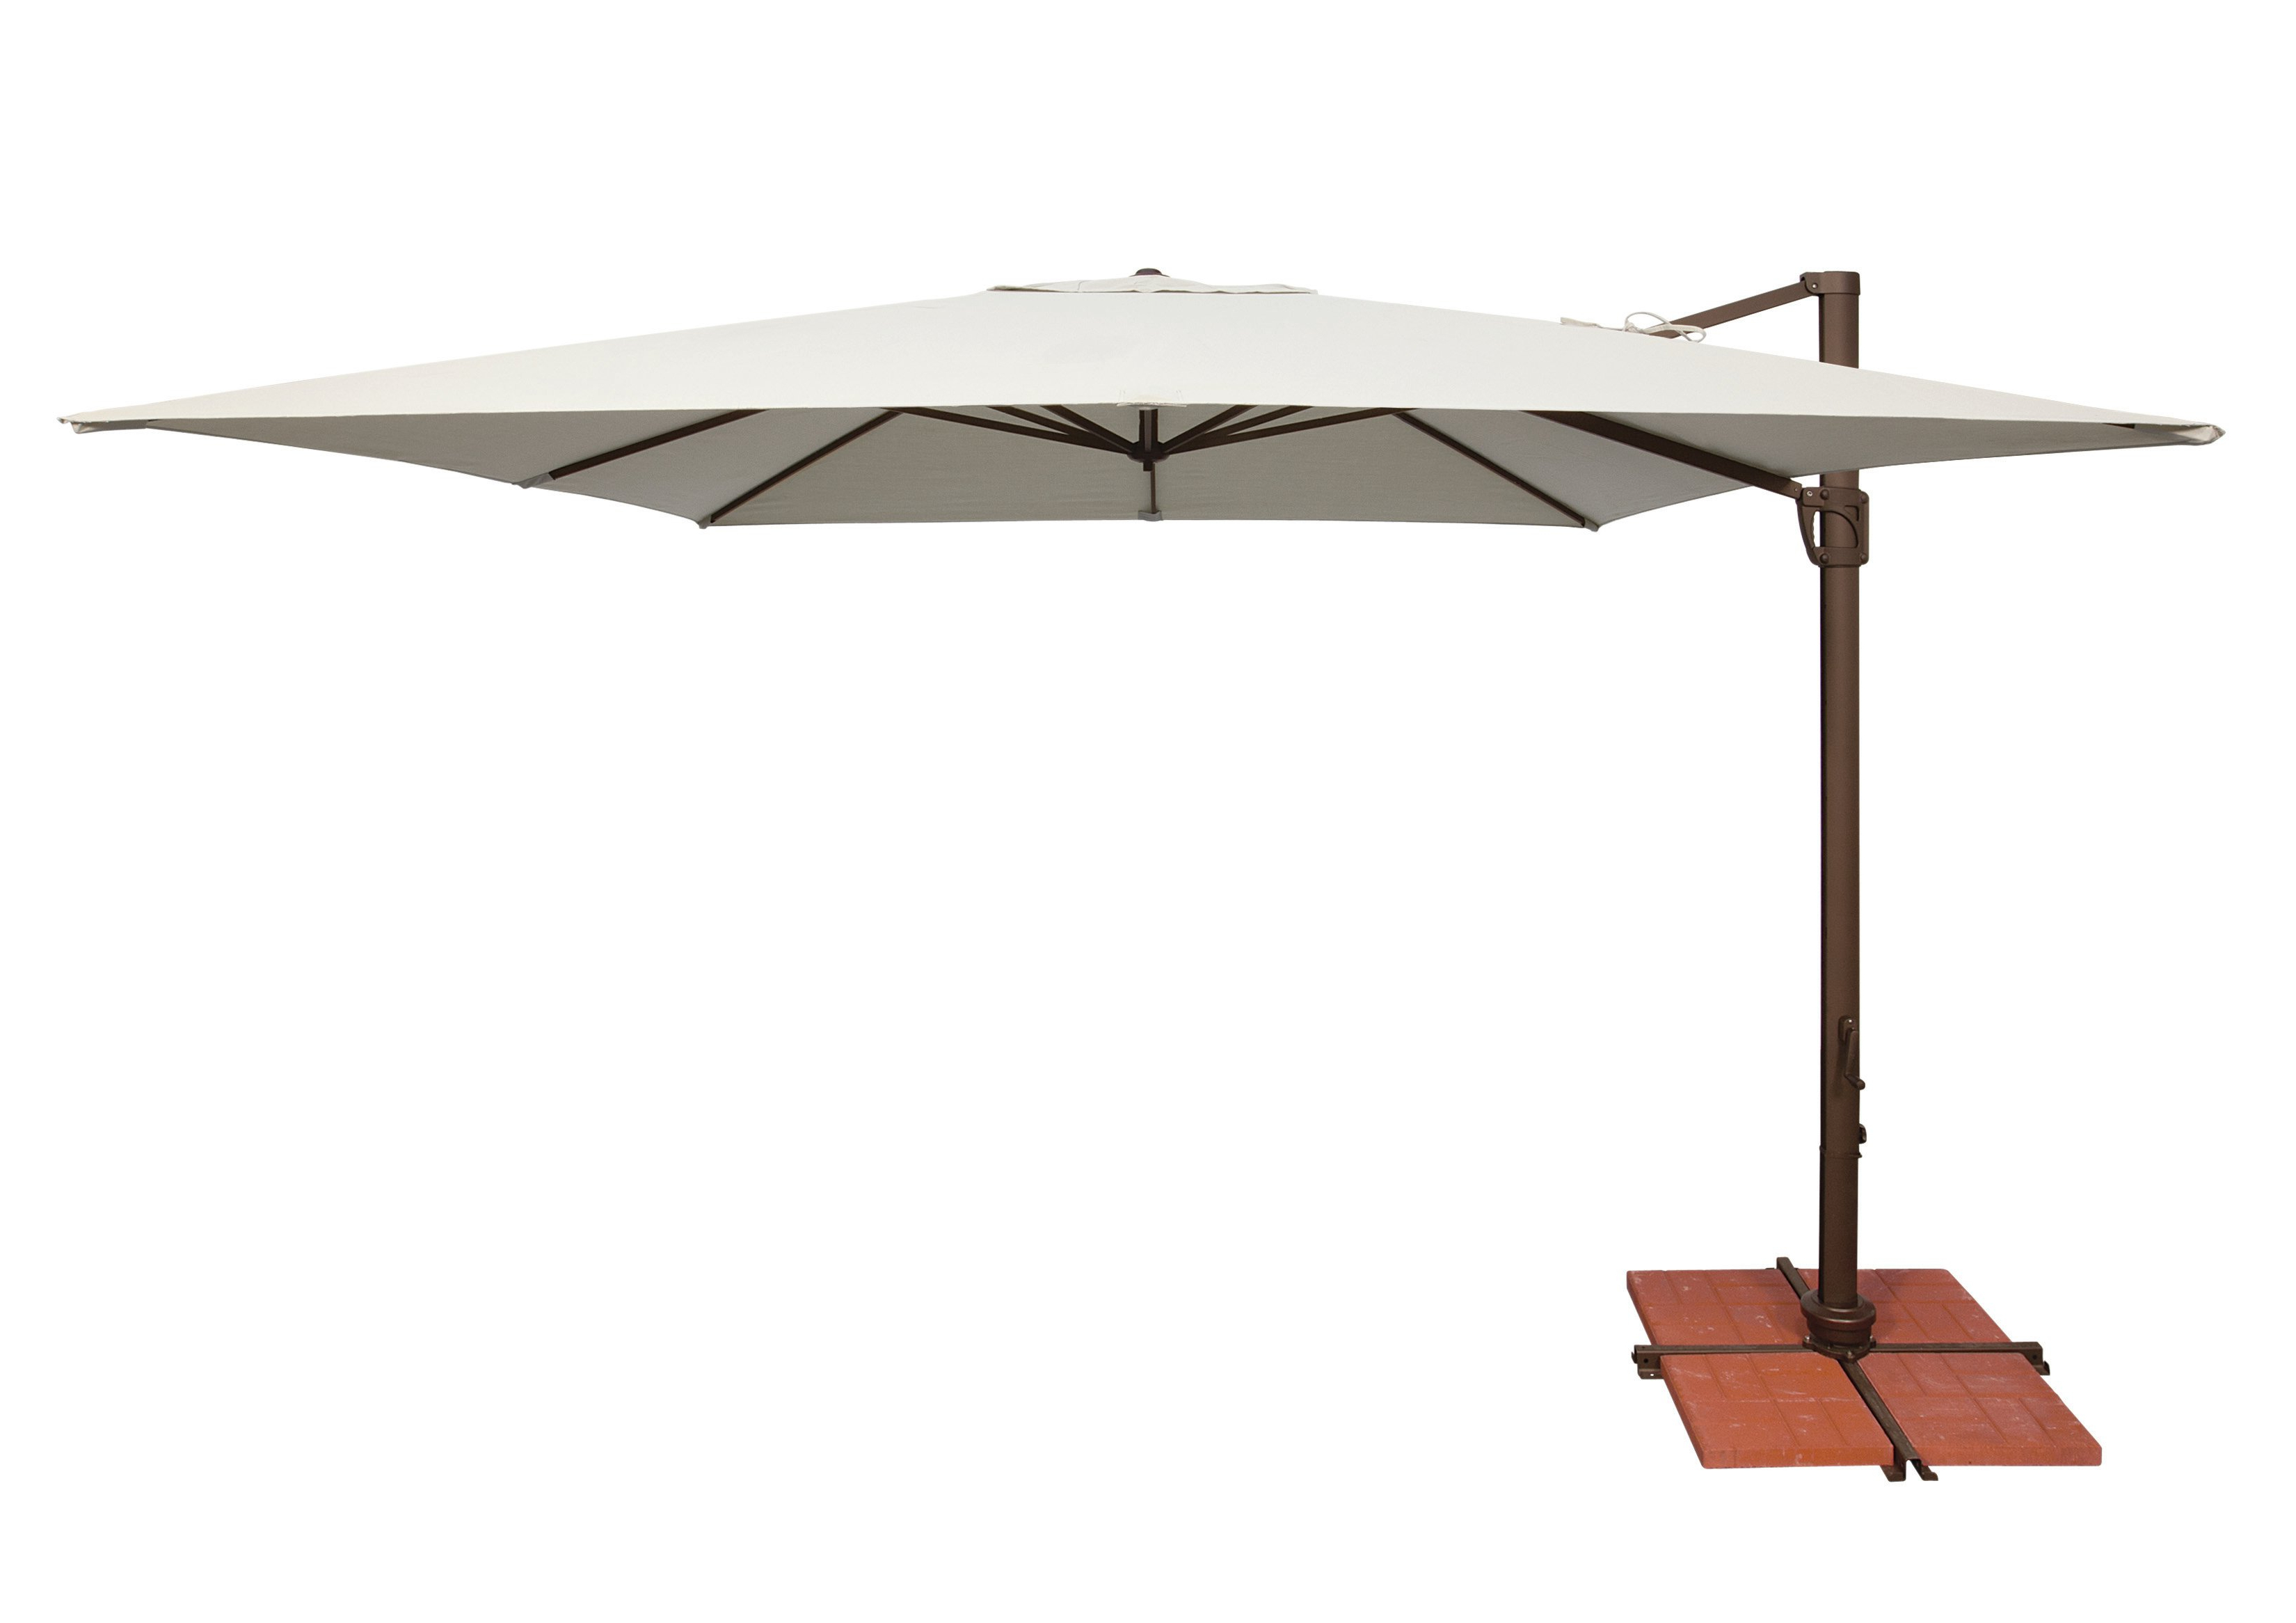 Newest Emely Cantilever Sunbrella Umbrellas With Windell 10' Square Cantilever Umbrella (Gallery 16 of 20)